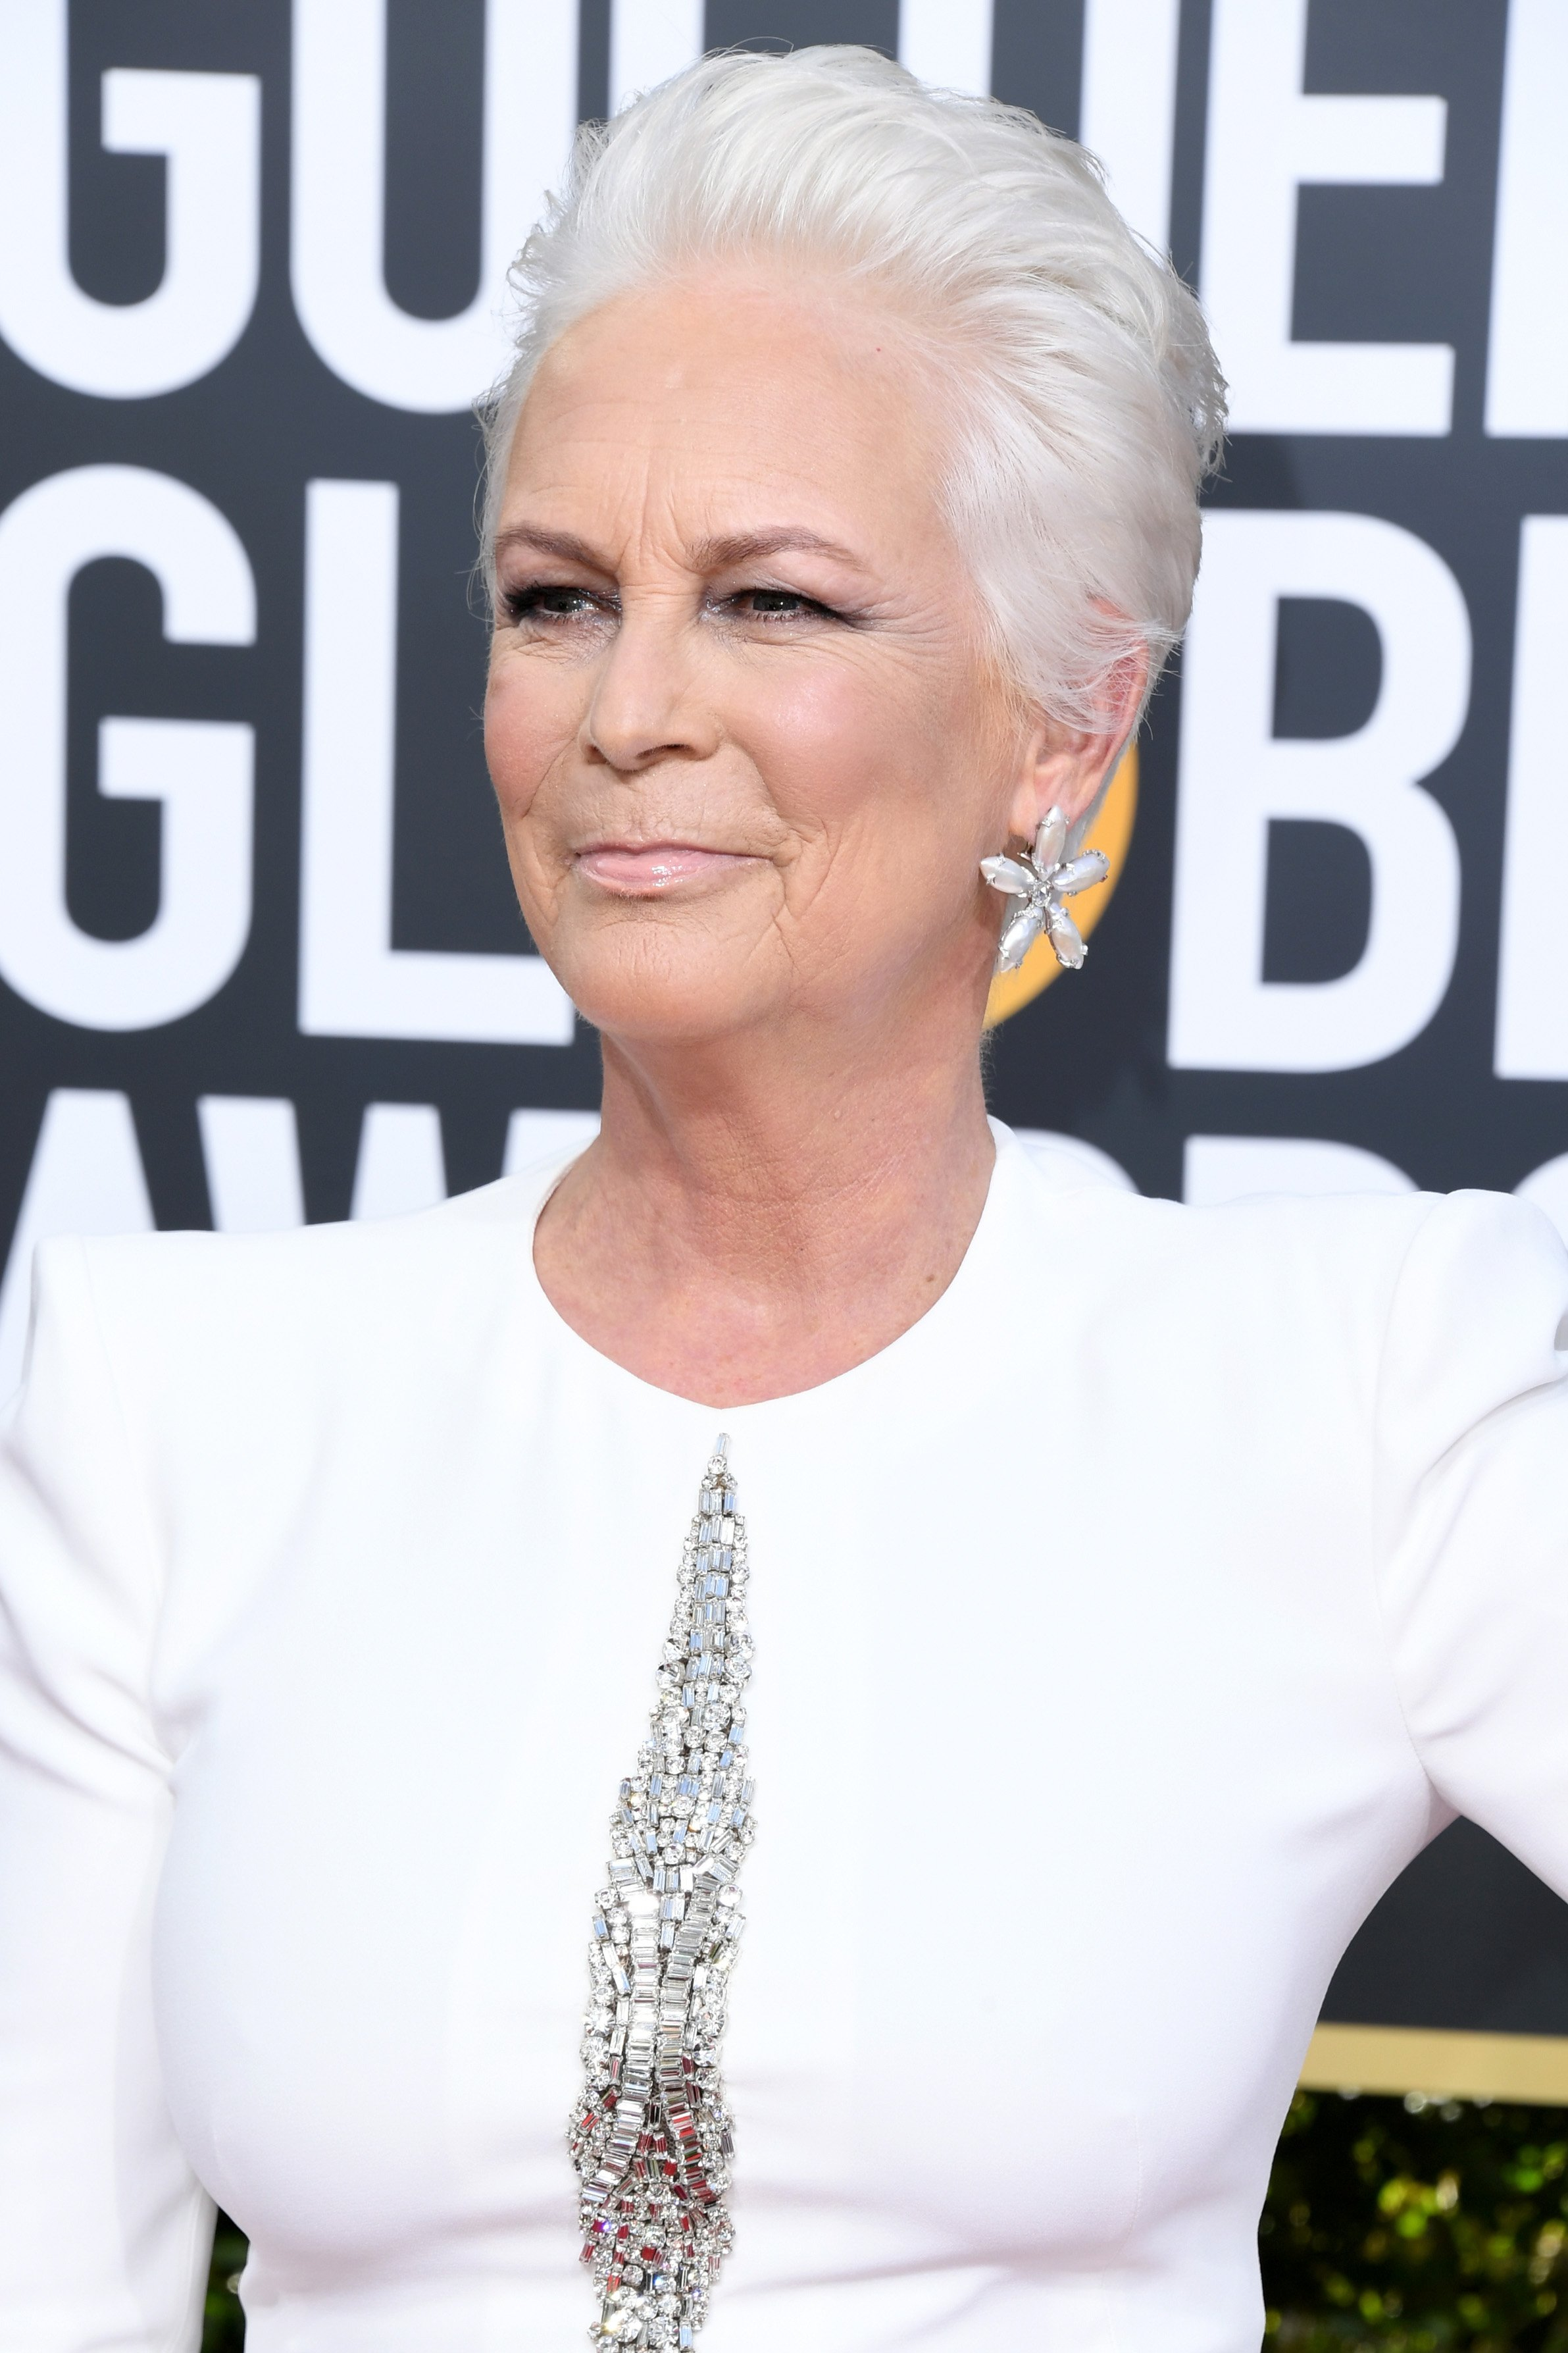 Jamie Lee Curtis attends the 76th Annual Golden Globe Awards at The Beverly Hilton Hotel on January 6, 2019. | Photo: GettyImages